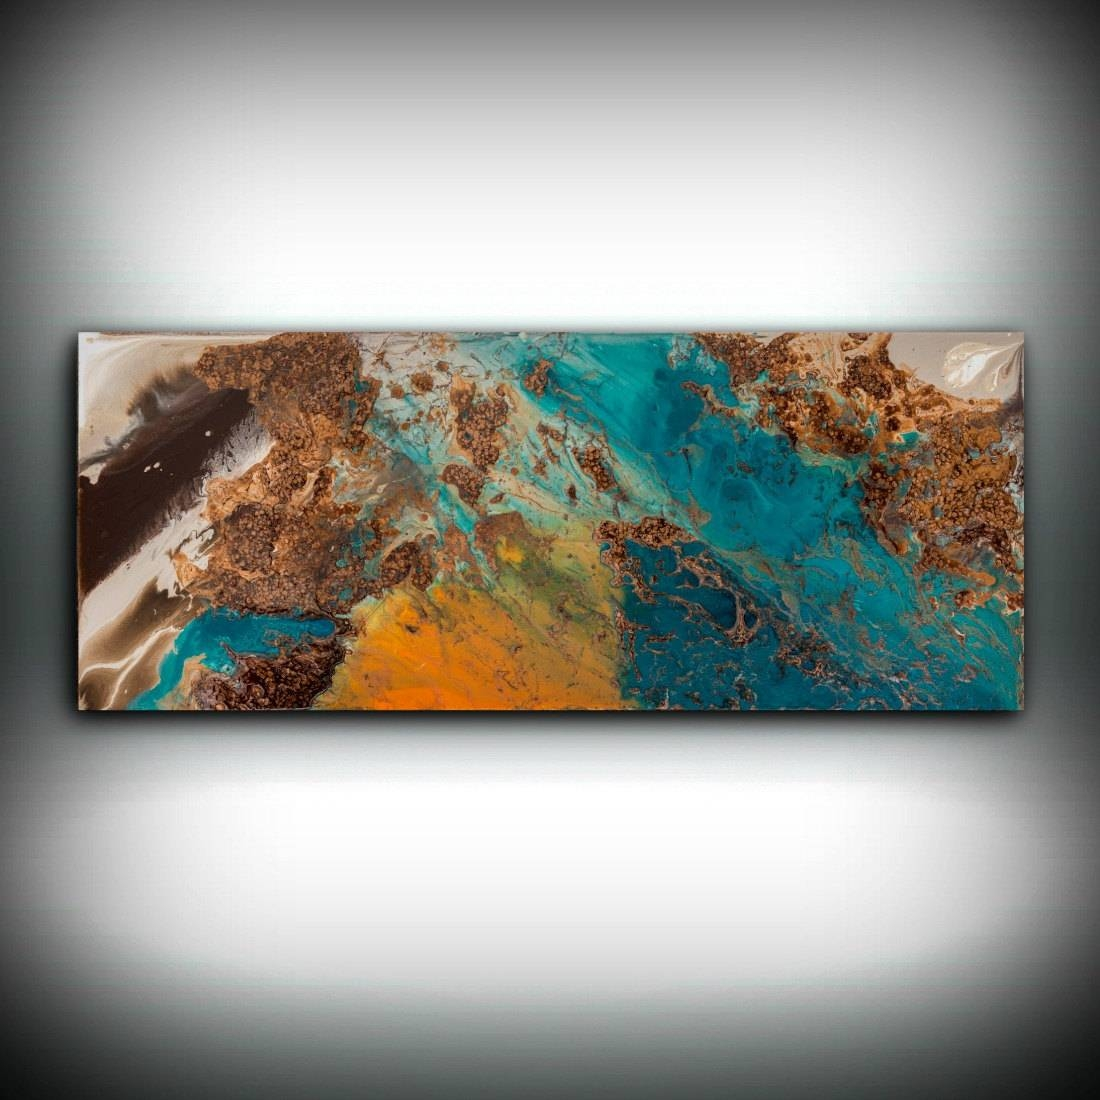 Sale Blue And Copper Art, Wall Art Prints Fine Art Prints Abstract Within Most Recent Orange And Turquoise Wall Art (View 8 of 20)